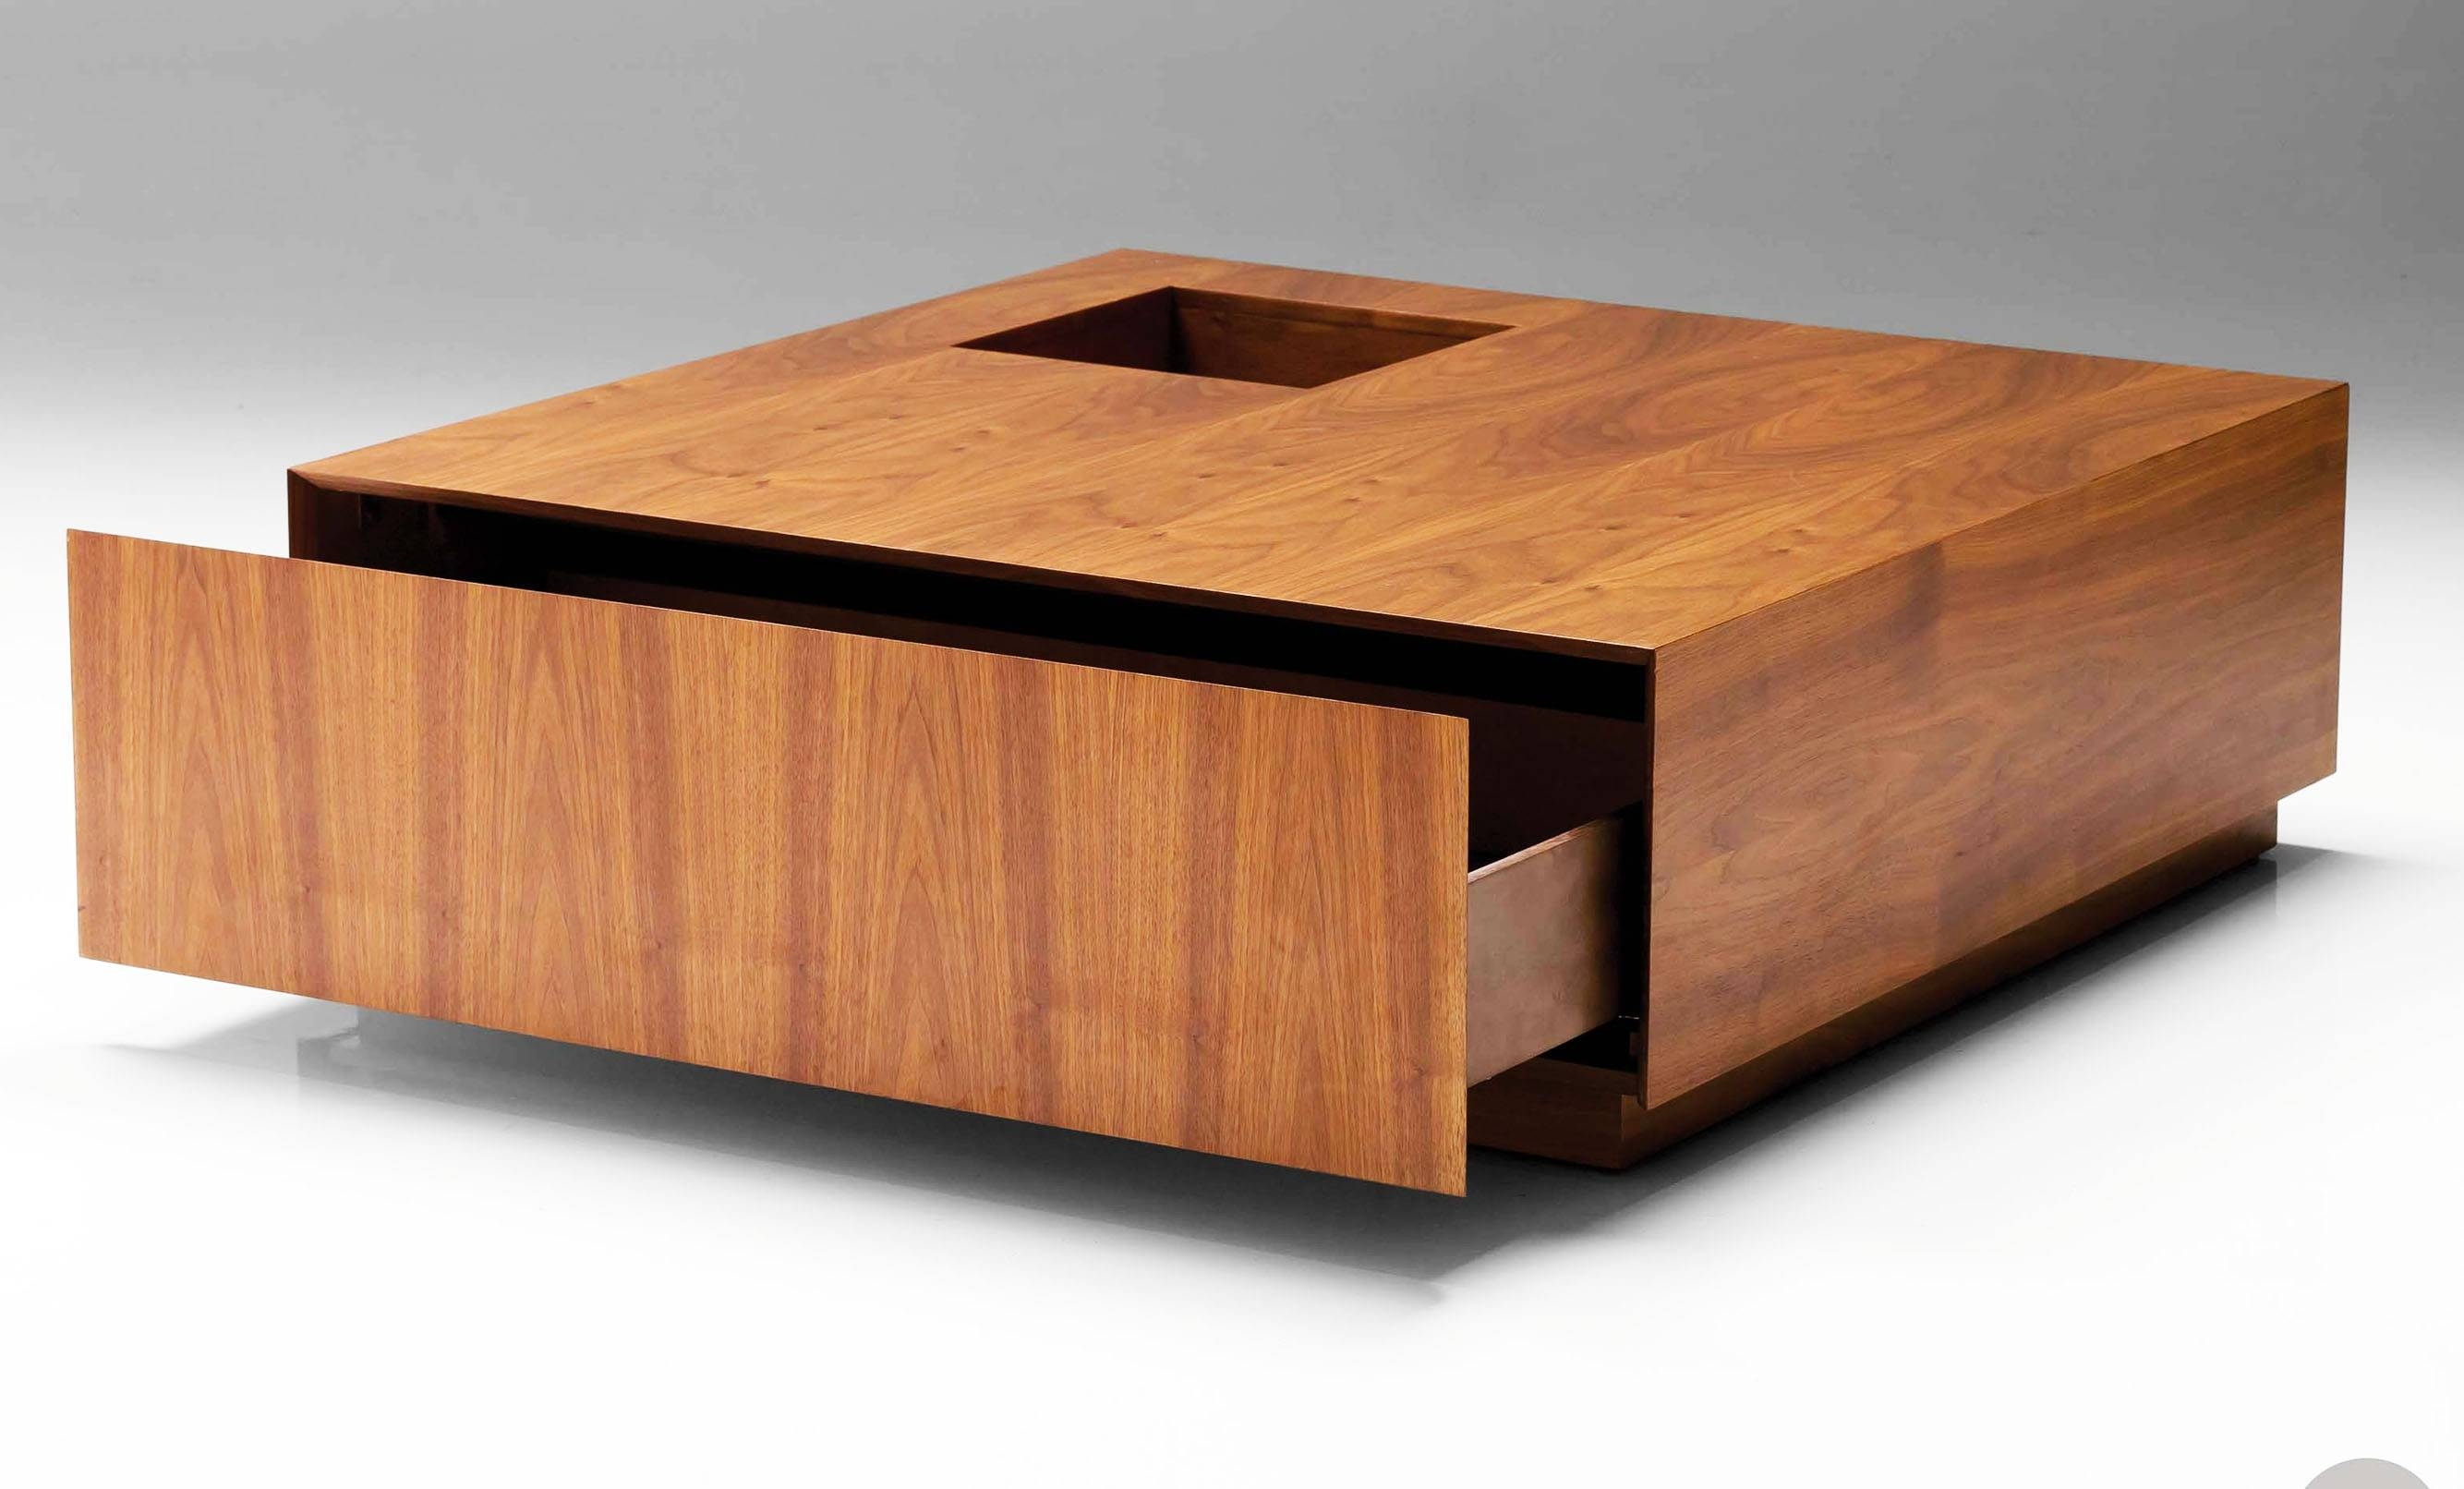 Wood Square Lift Top Coffee Table With Storage | Homefurniture within Low Coffee Tables With Storage (Image 30 of 30)